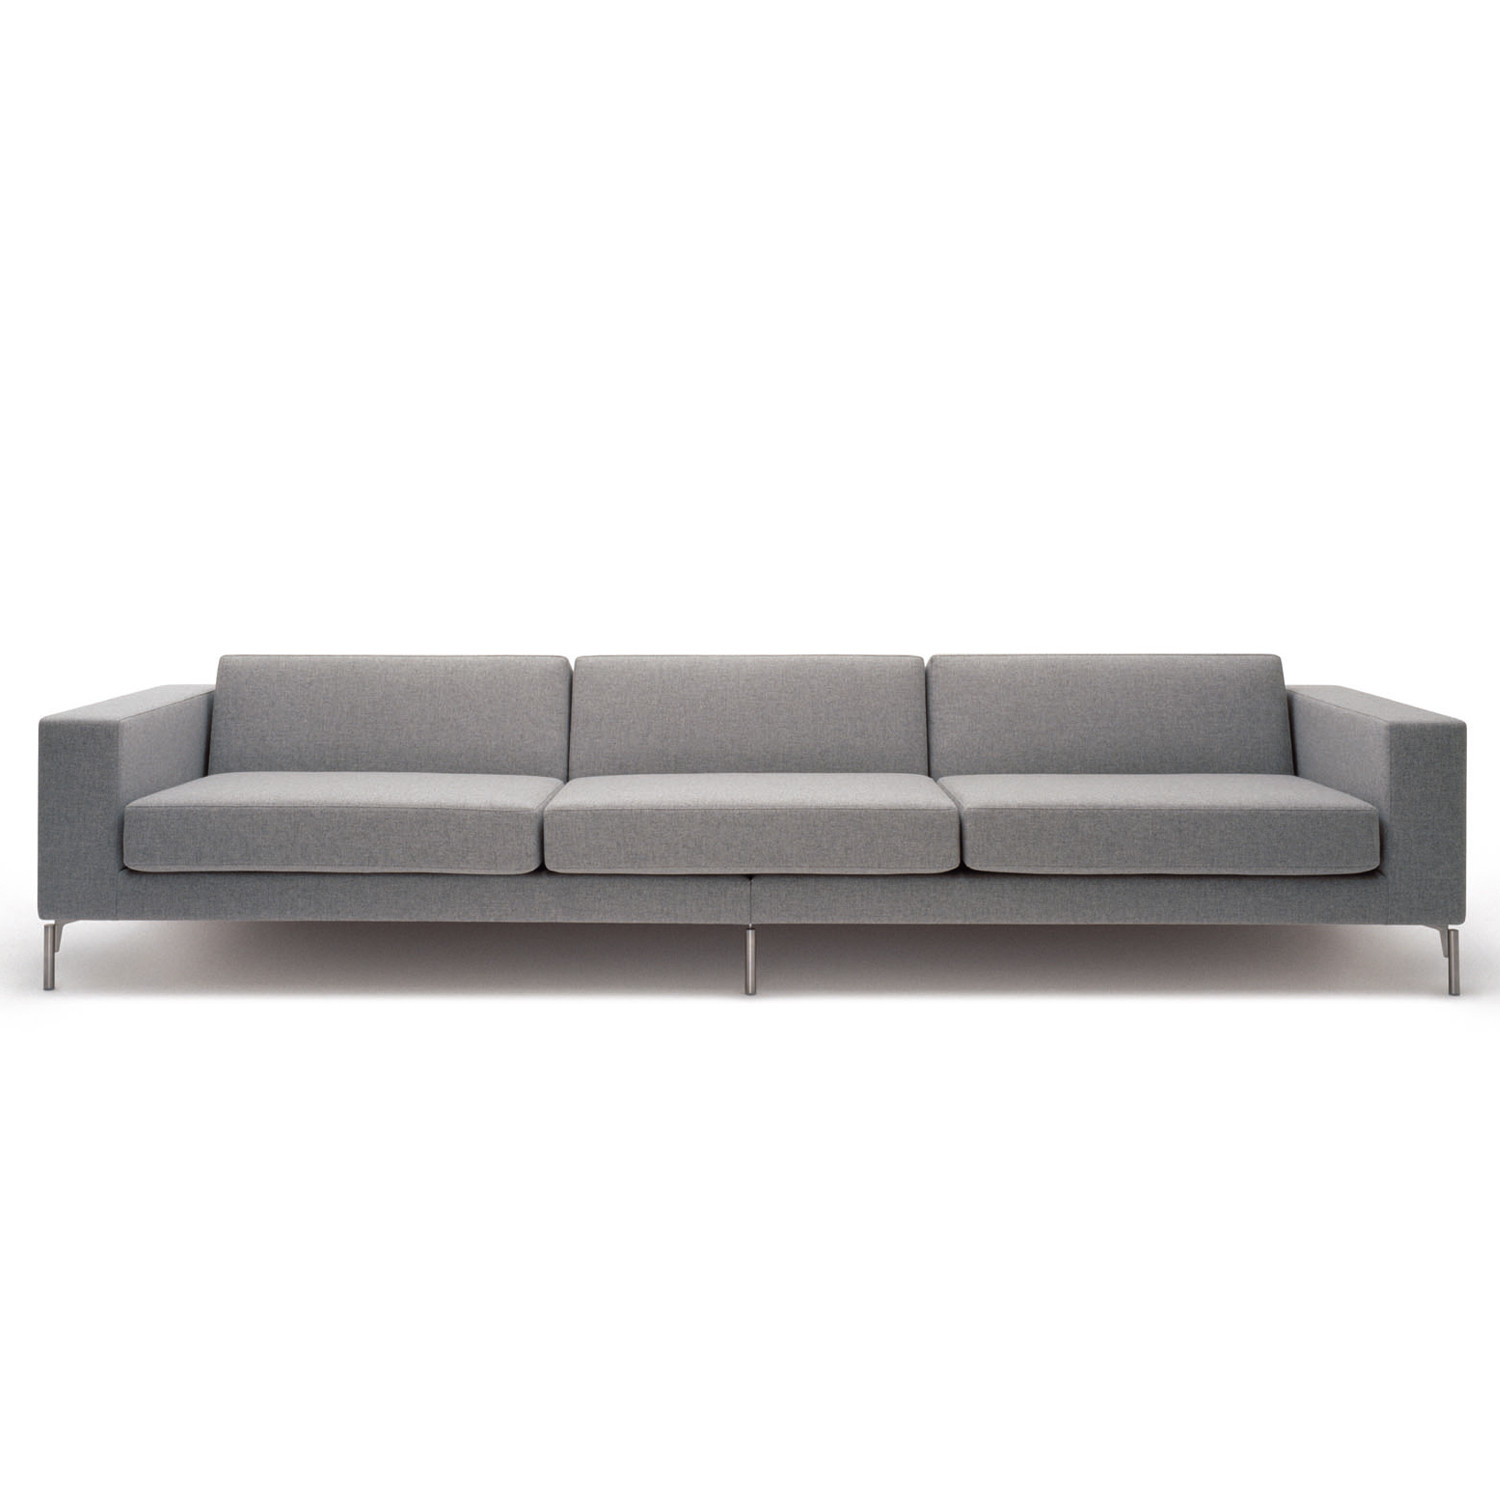 HM34 Three-Seater Sofa